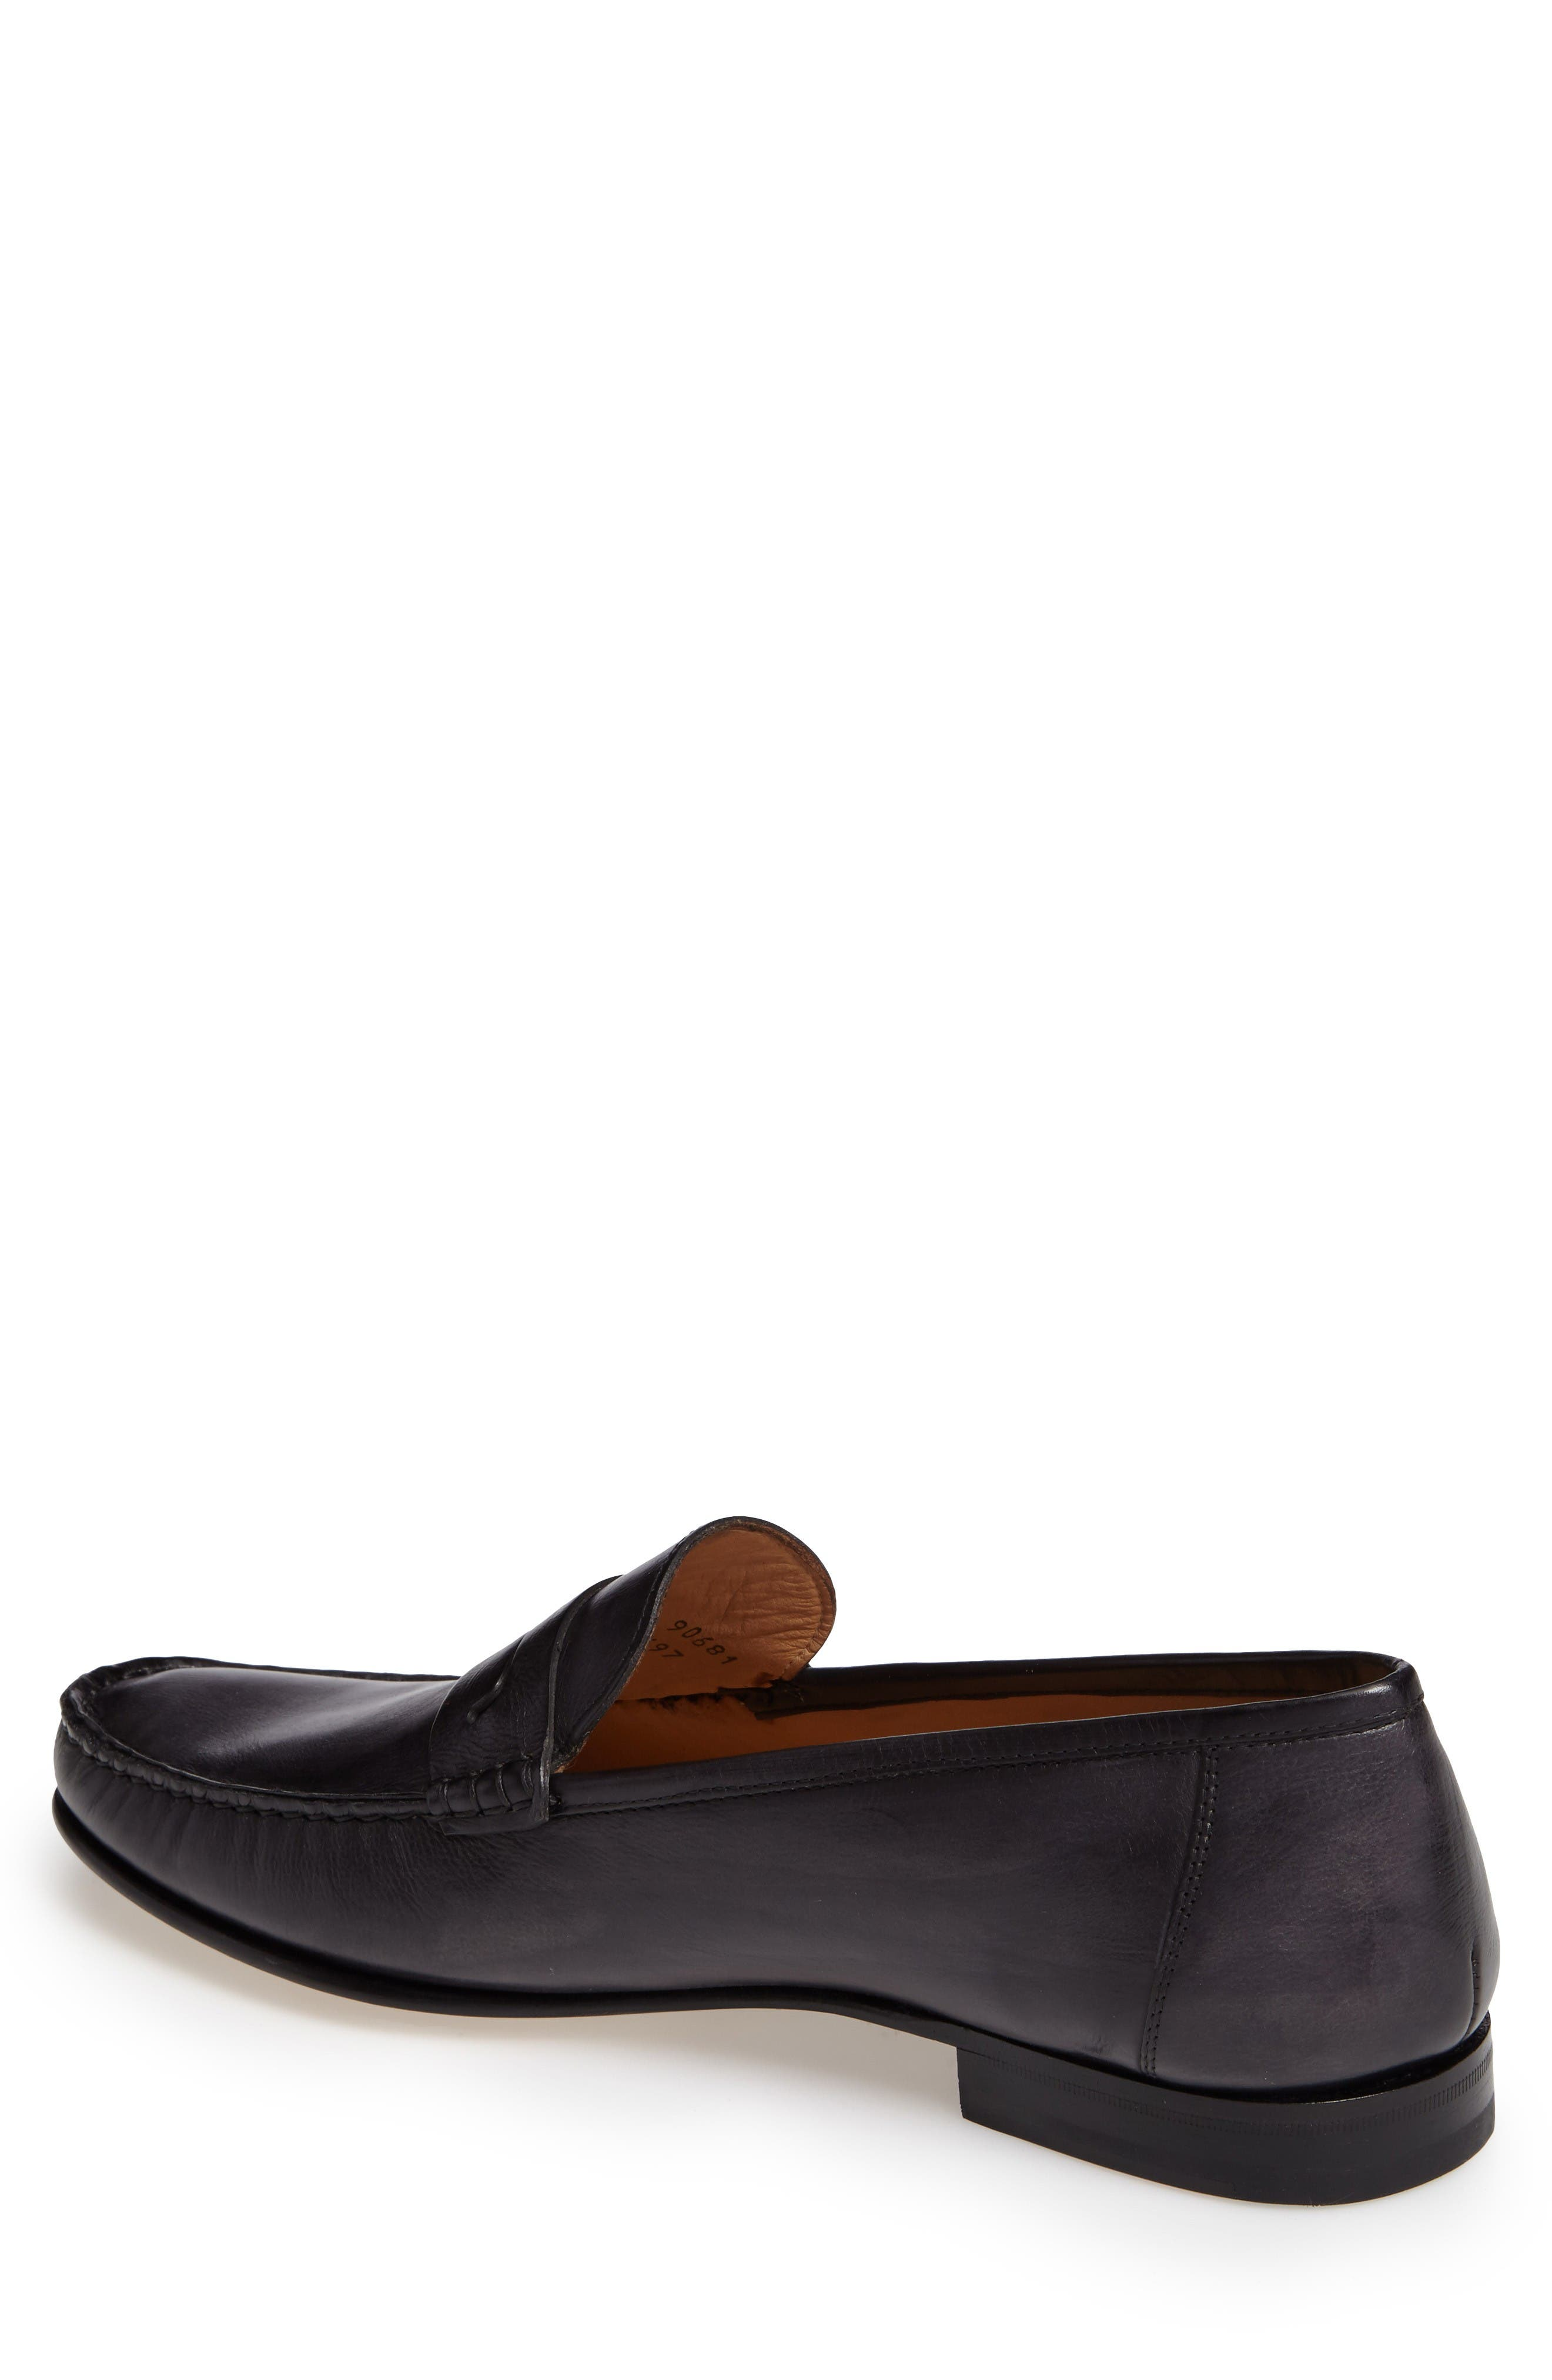 Alternate Image 2  - Mezlan Pauli Classic Penny Loafer (Men)